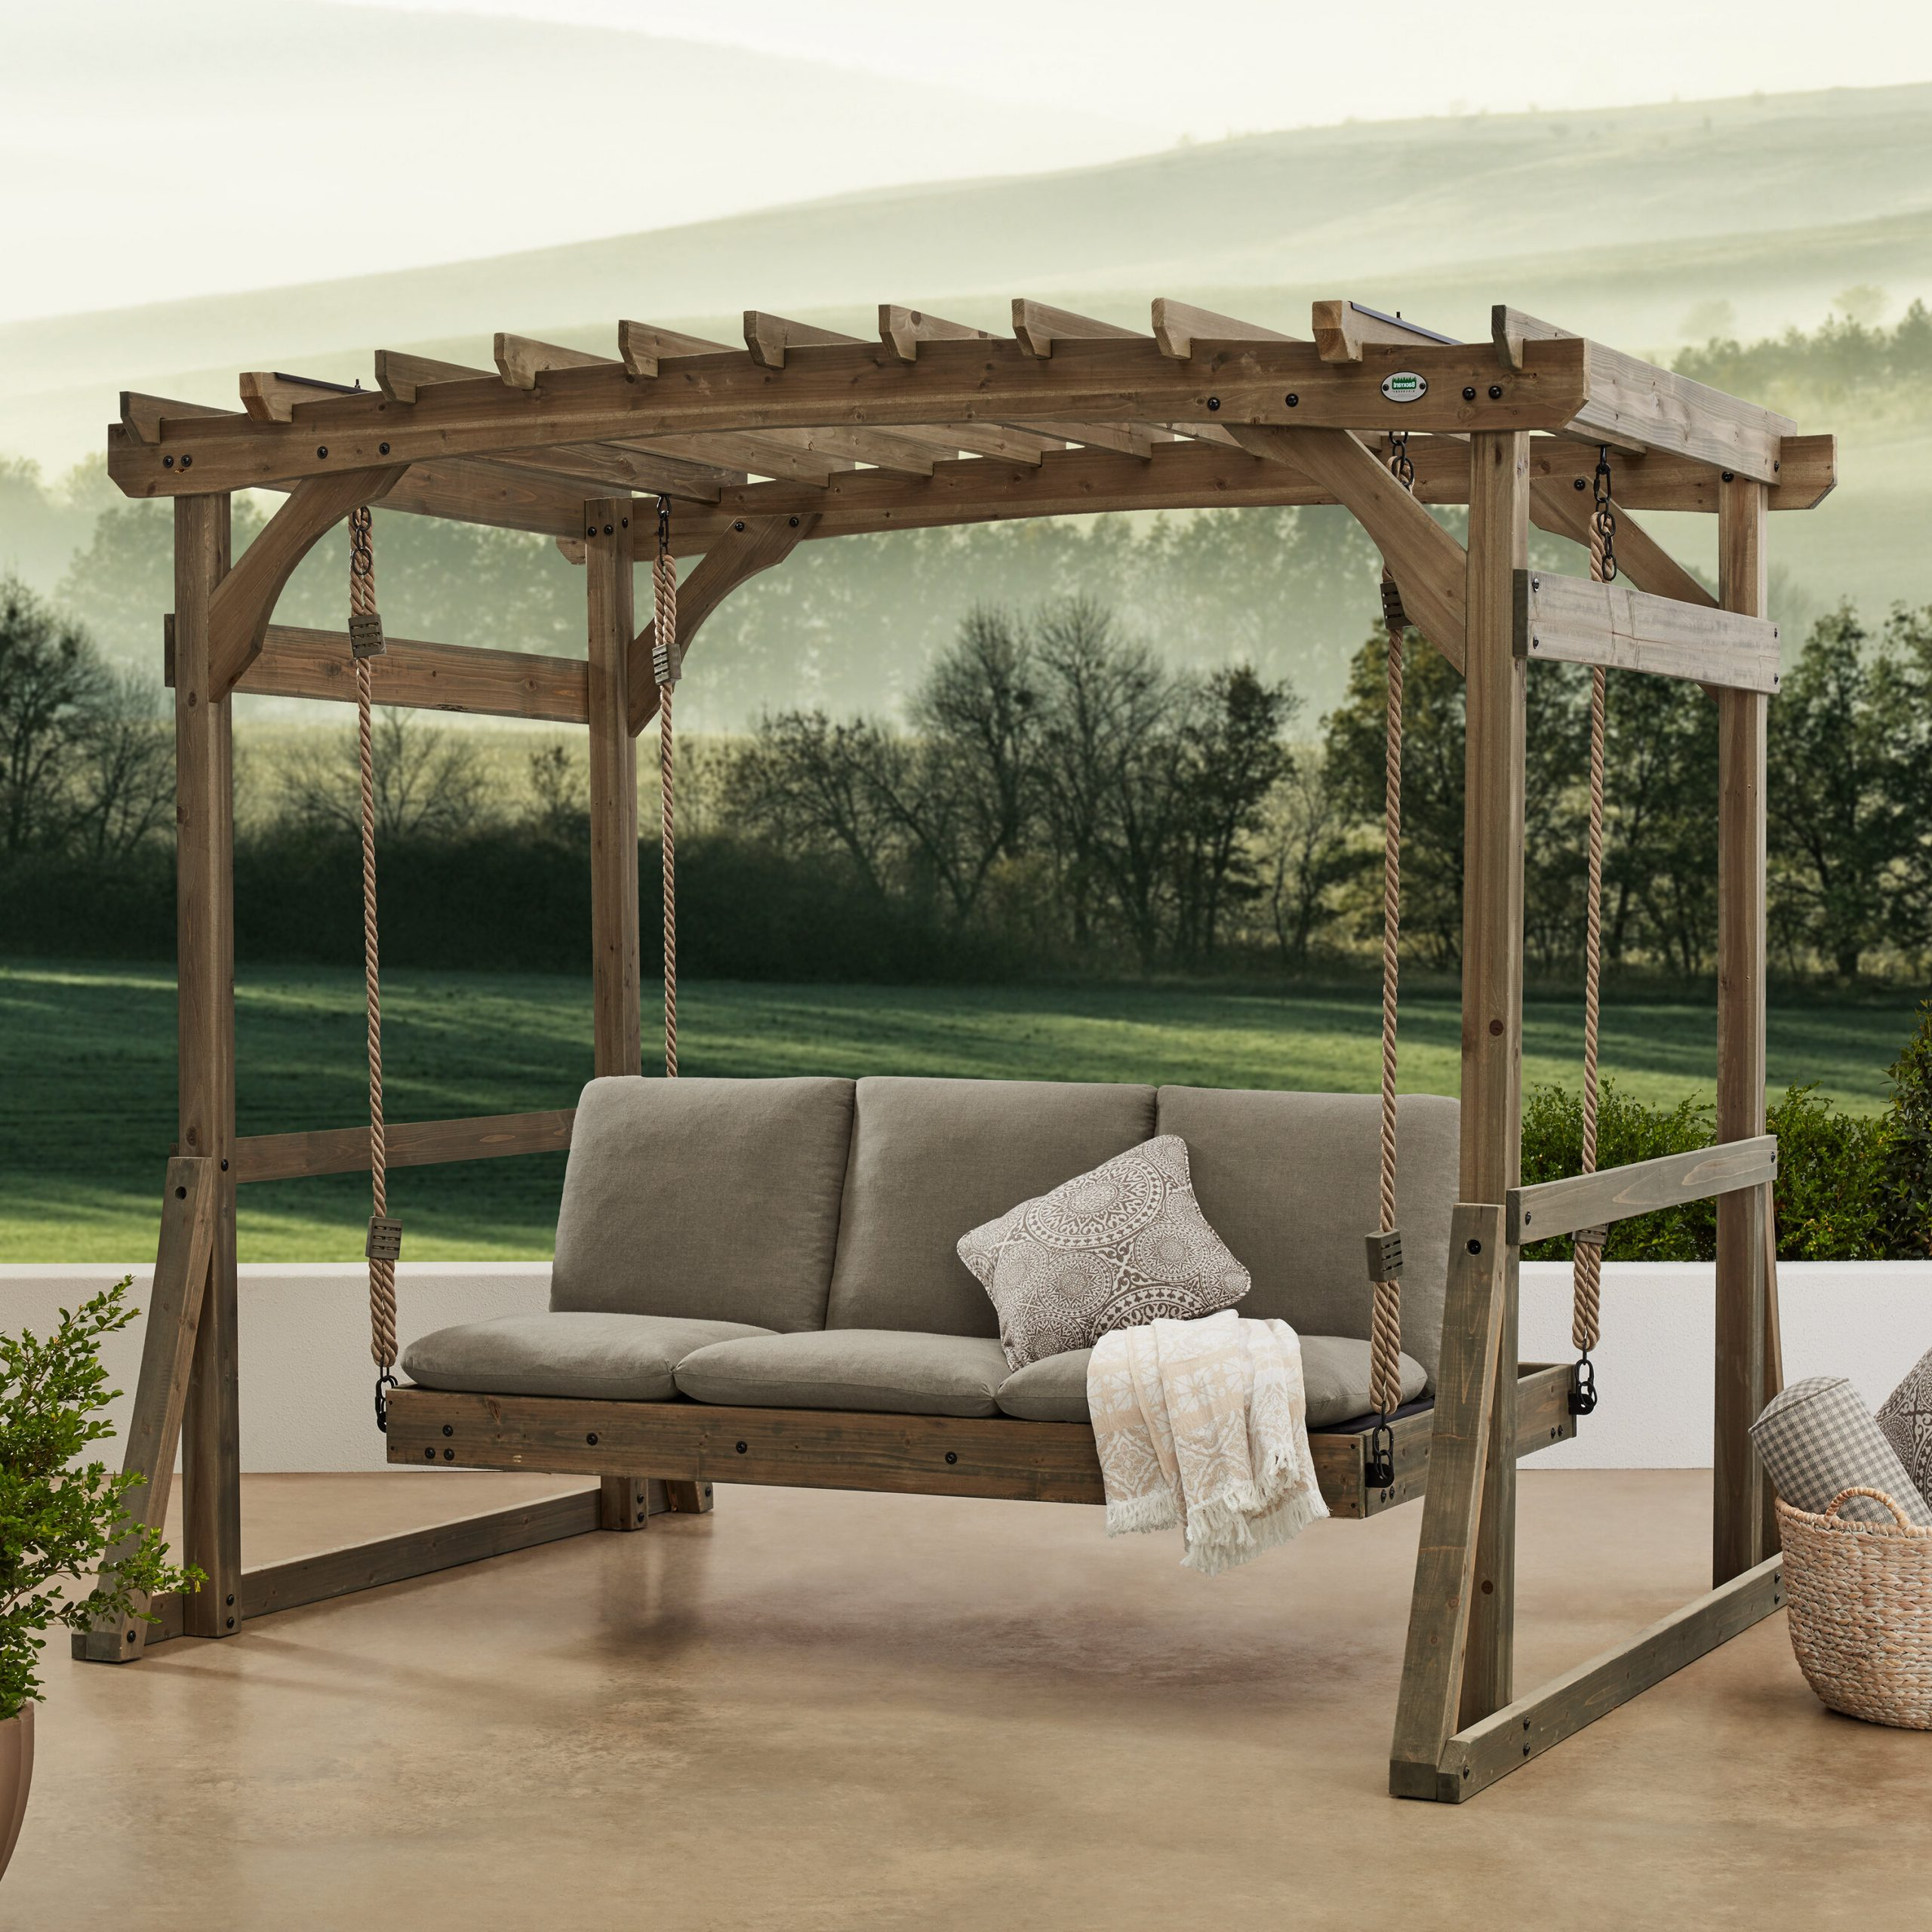 Best And Newest Claremont Pergola Lounger Porch Swing With Stand With Patio Gazebo Porch Canopy Swings (Gallery 14 of 25)